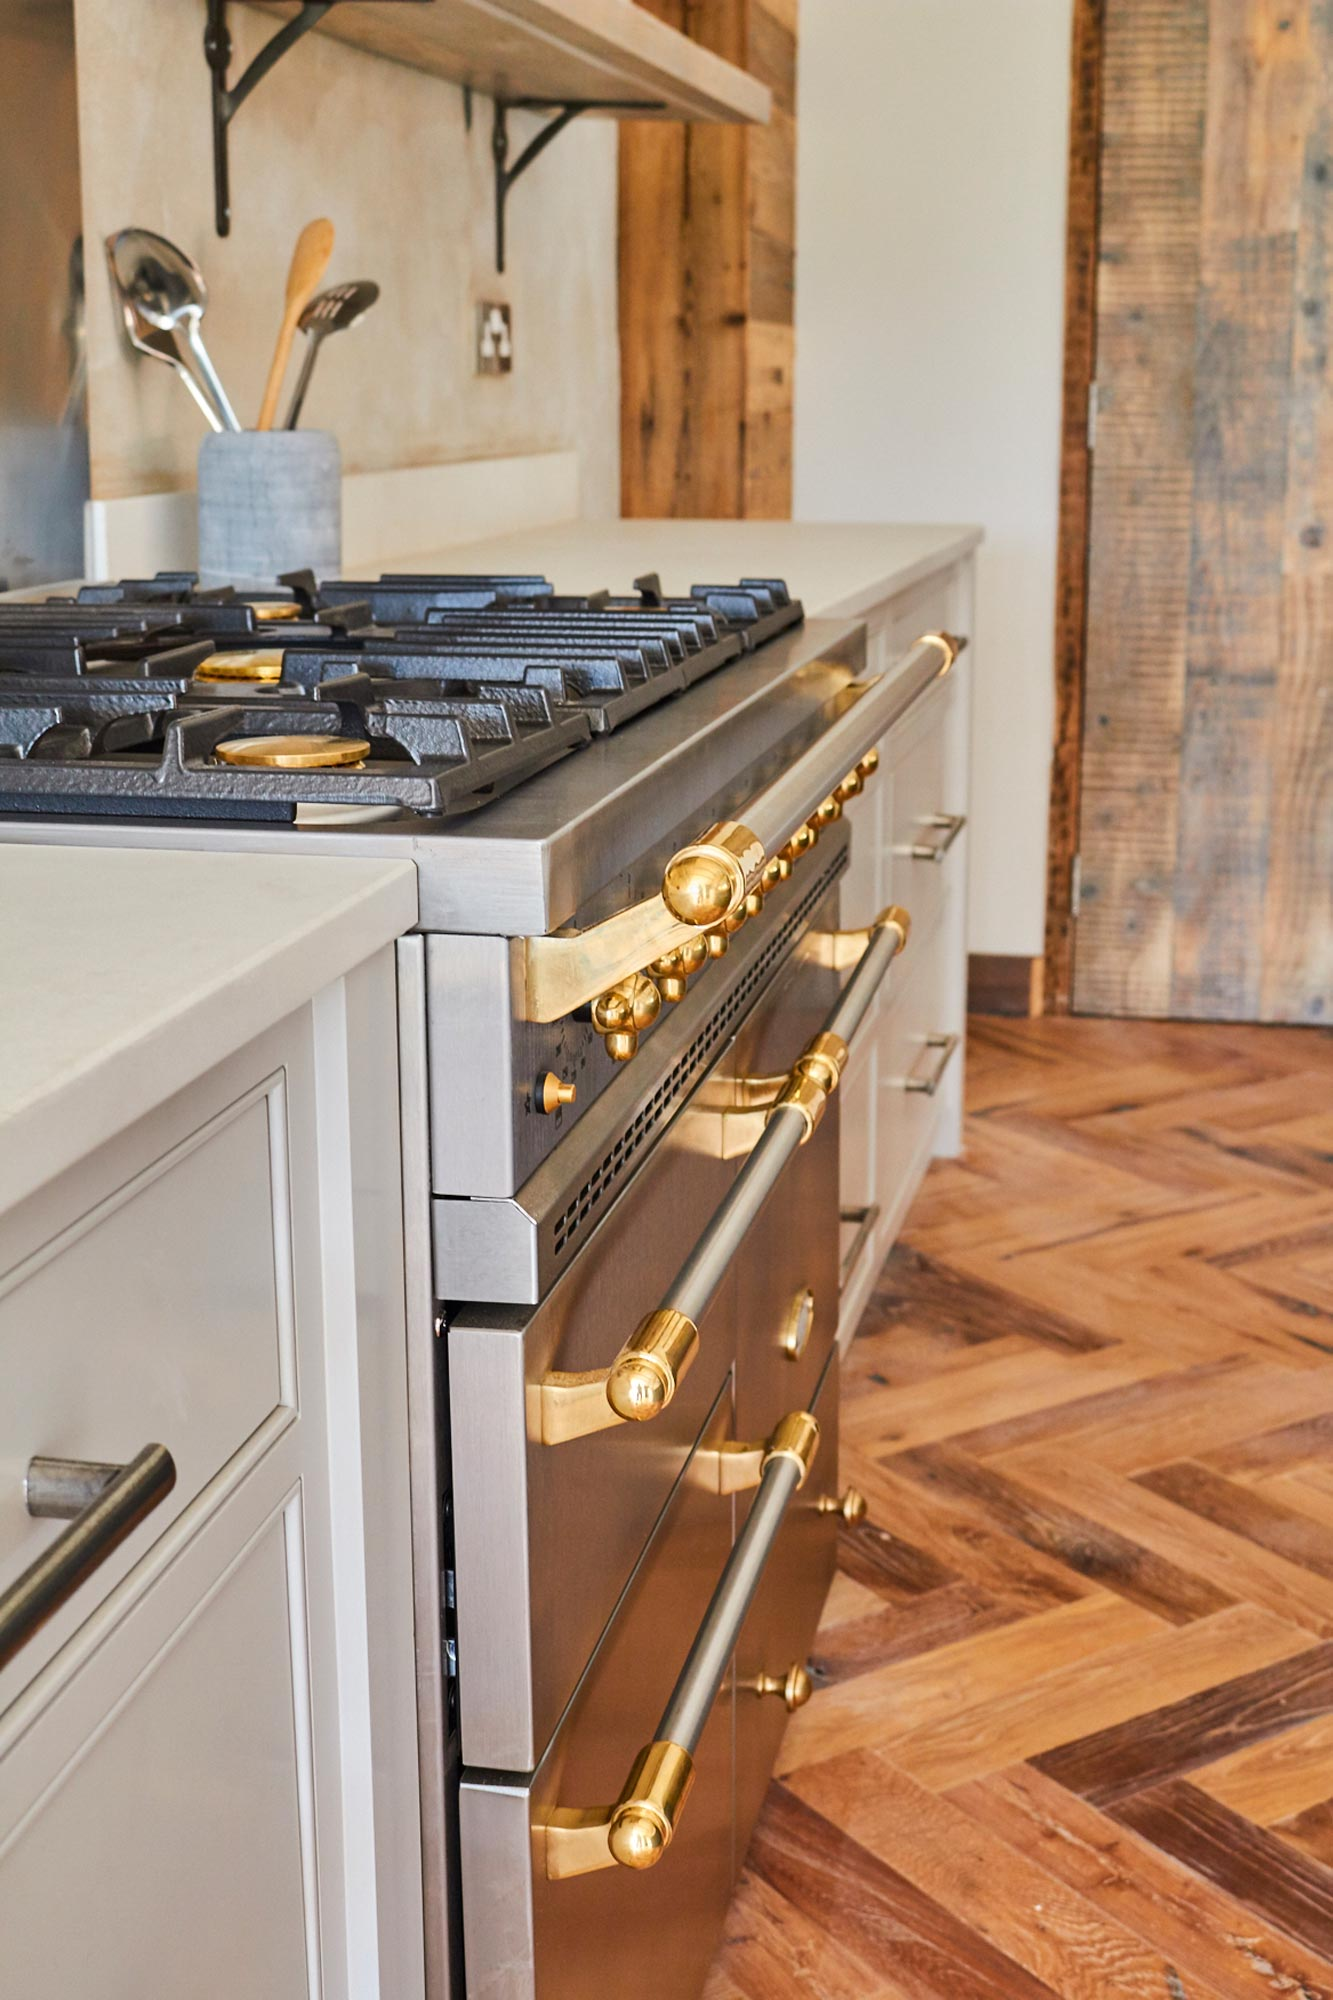 Stainless steel range cooker sits on herringbone oak floor